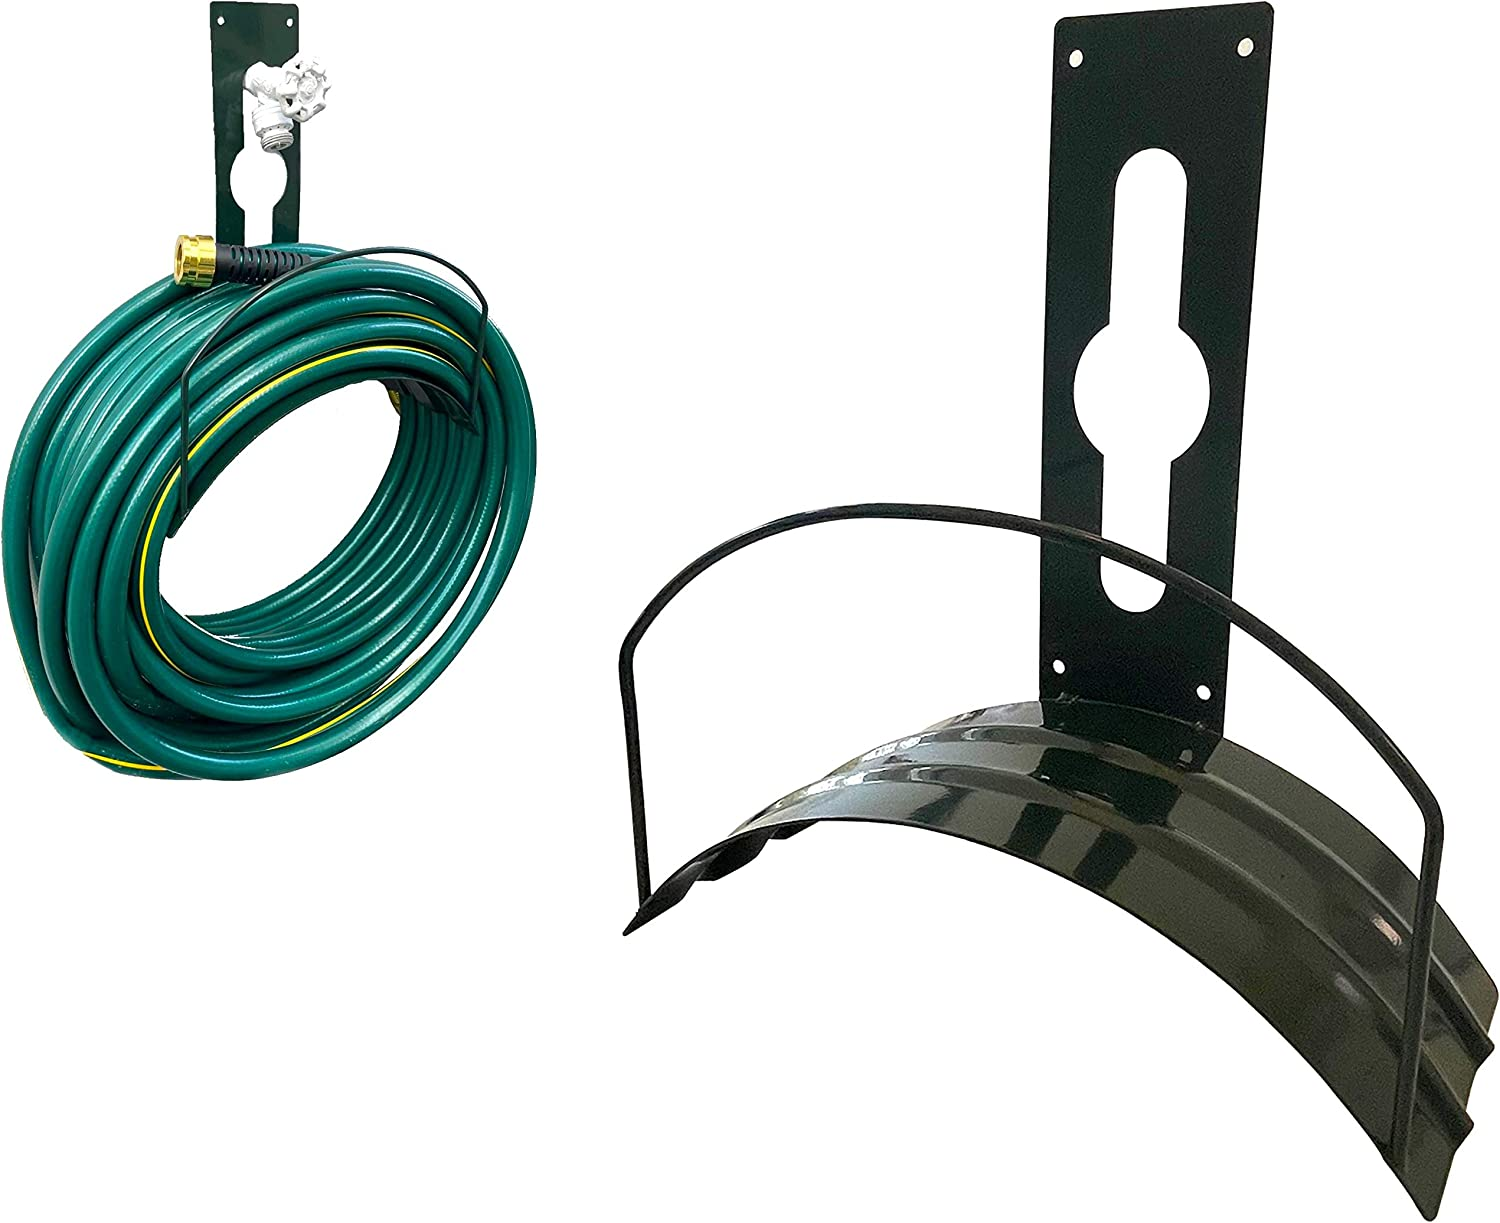 Garden Hose Hanger Deluxe Heavy Duty Hose Holder Wall Mount Hose Hook Holds Up To 125 Feet Hose Solid Steel Extra Bracing DUAL Function Hang from Spigot or Wall Mount Hose Rack Water Hose Wall Mount